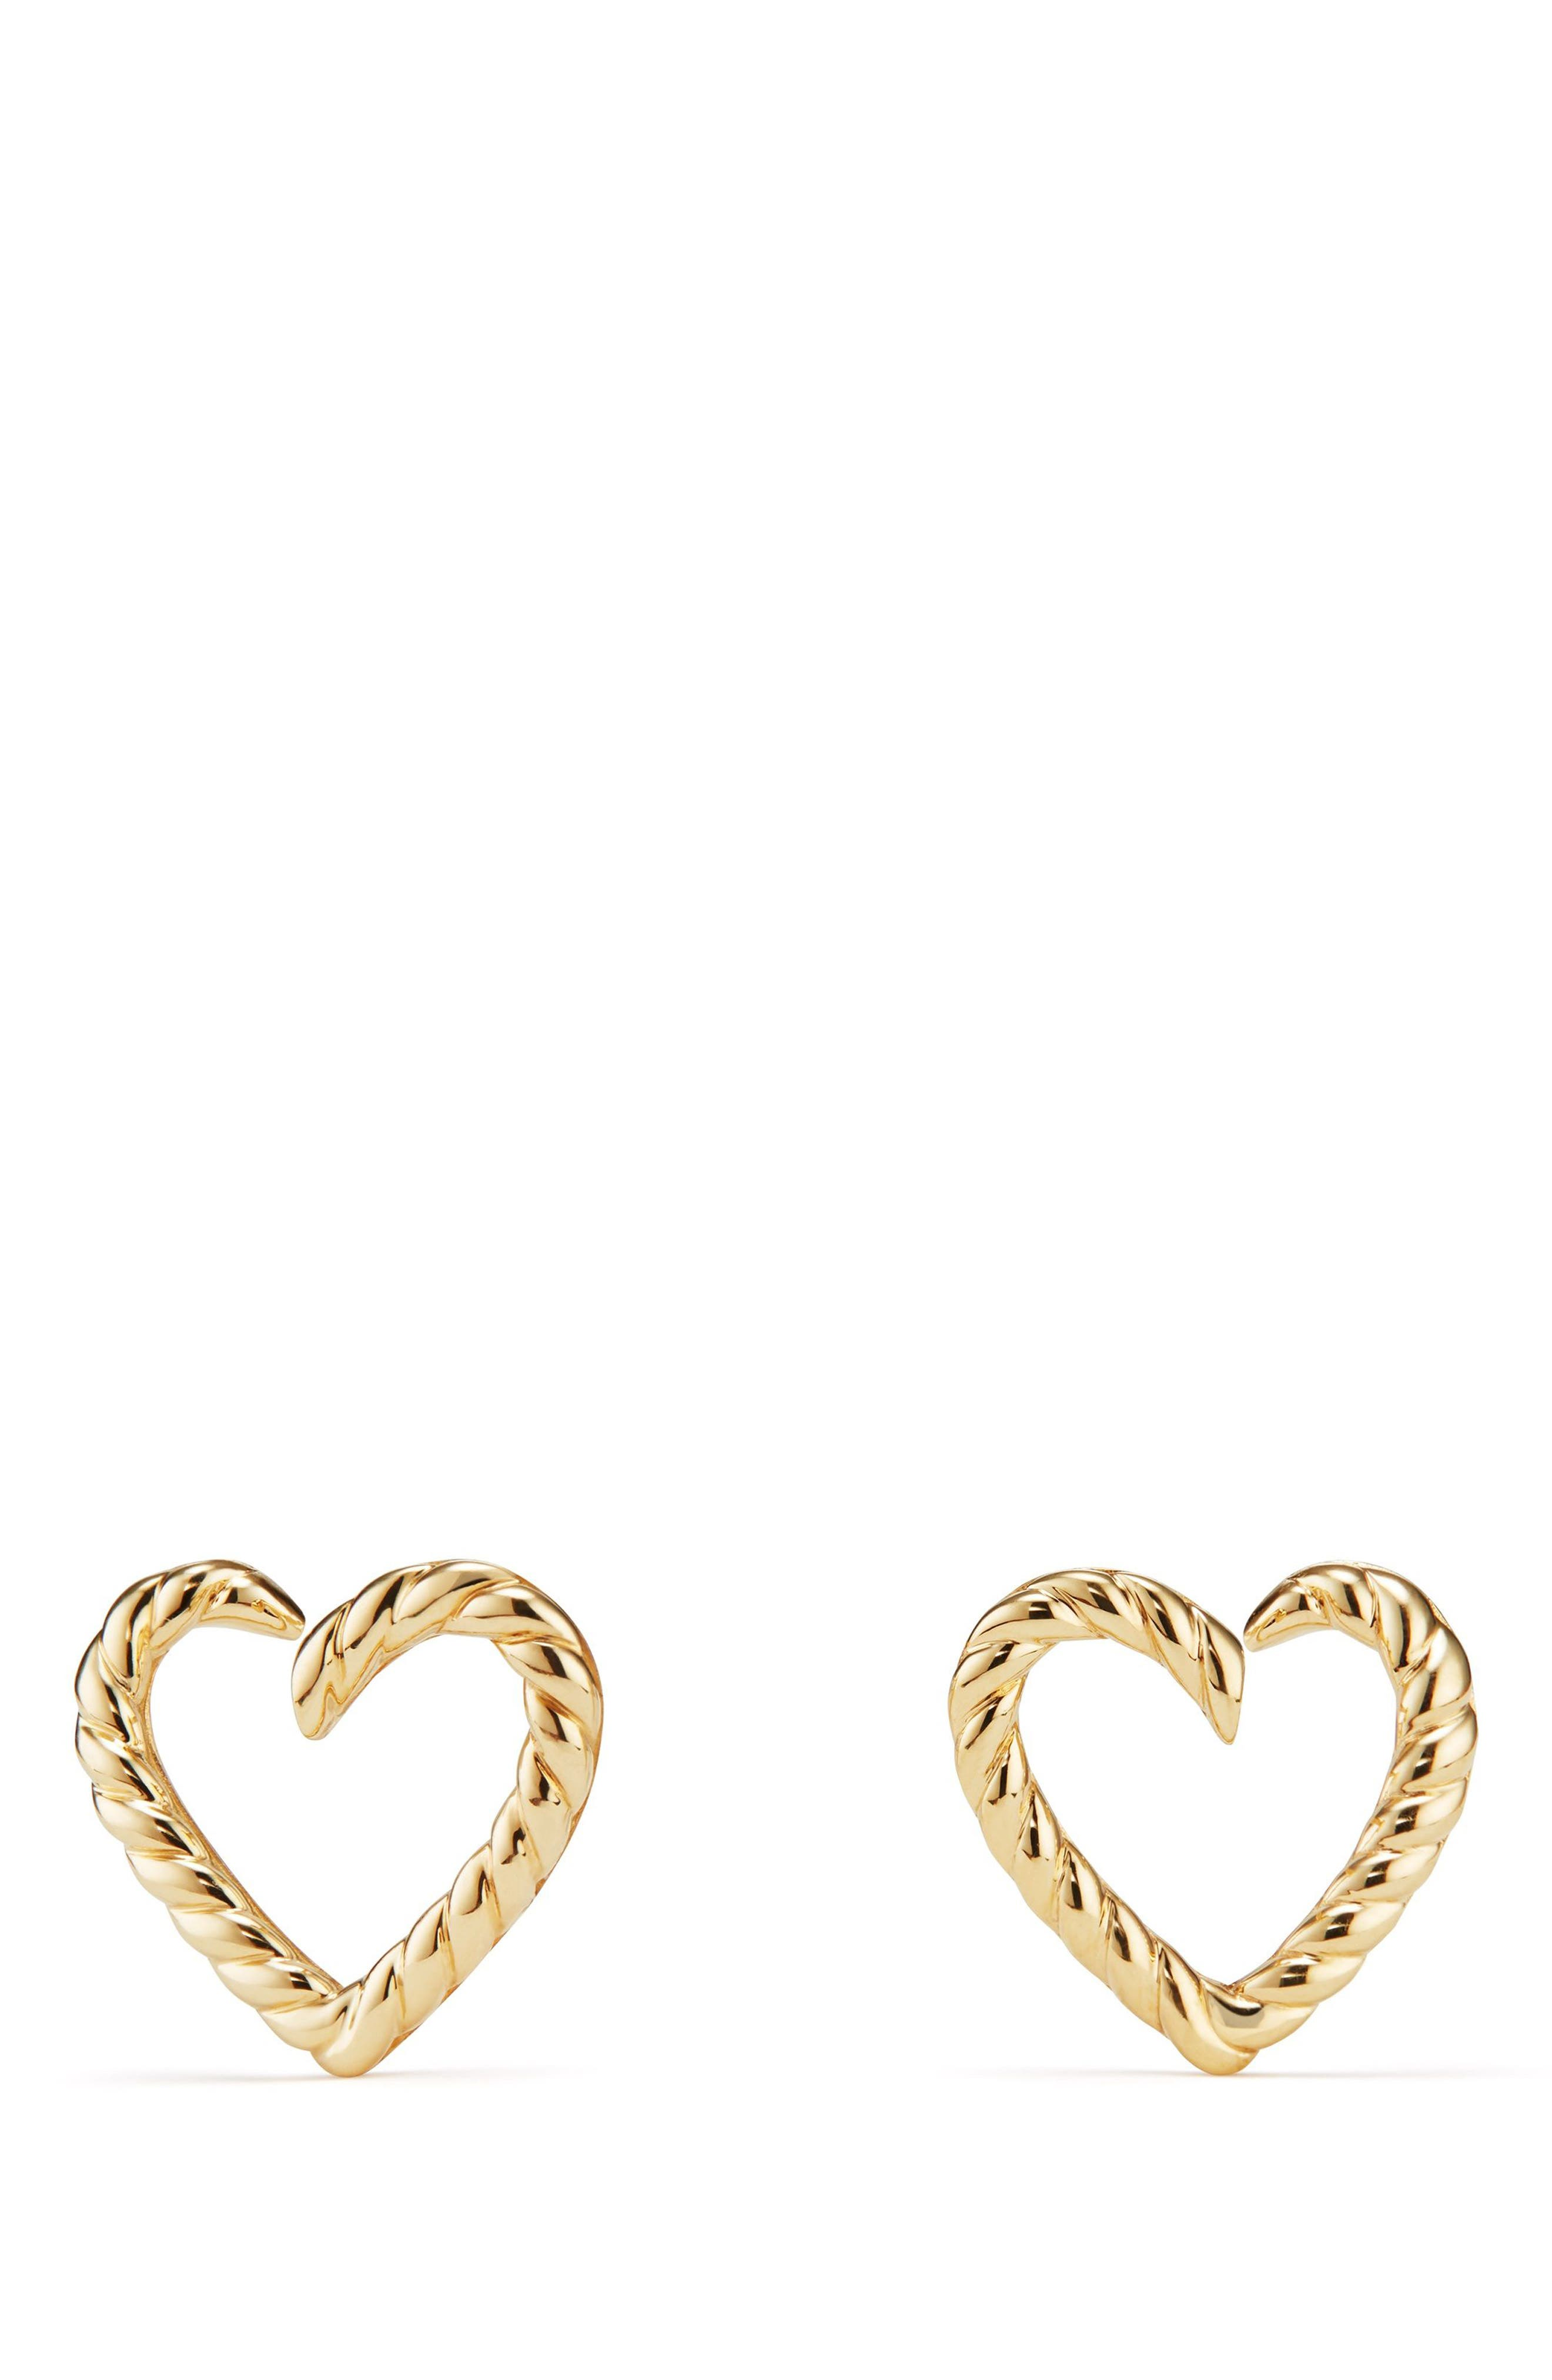 Alternate Image 1 Selected - David Yurman Cable Heart Earring in 18K Gold